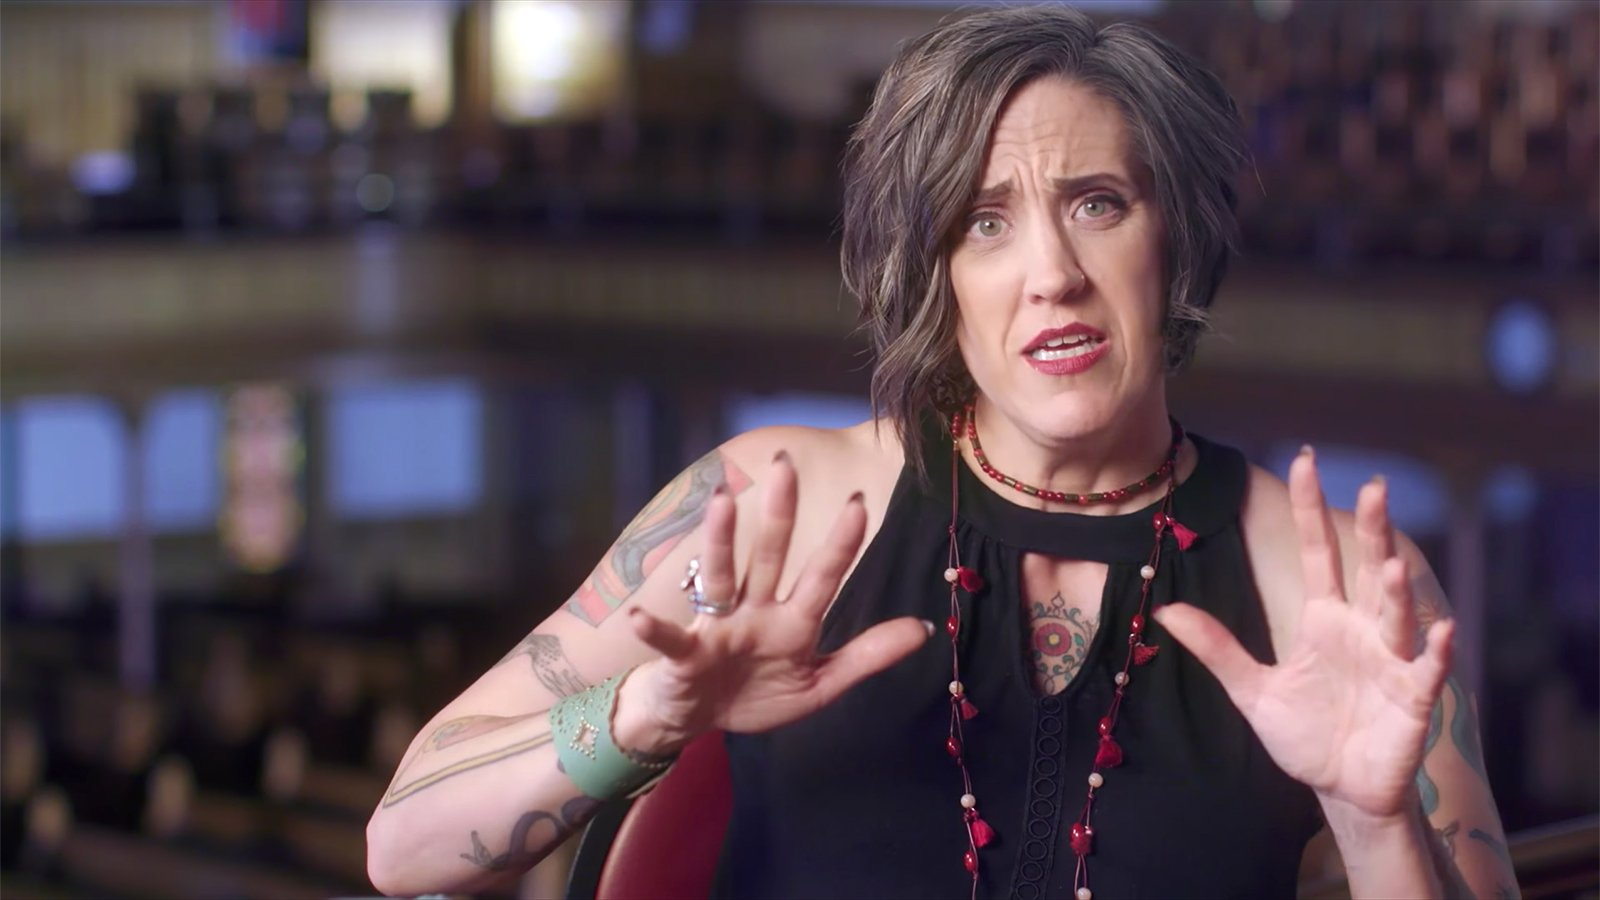 The Rev. Nadia Bolz-Weber discusses forgiveness in a video on her website. Video screengrab